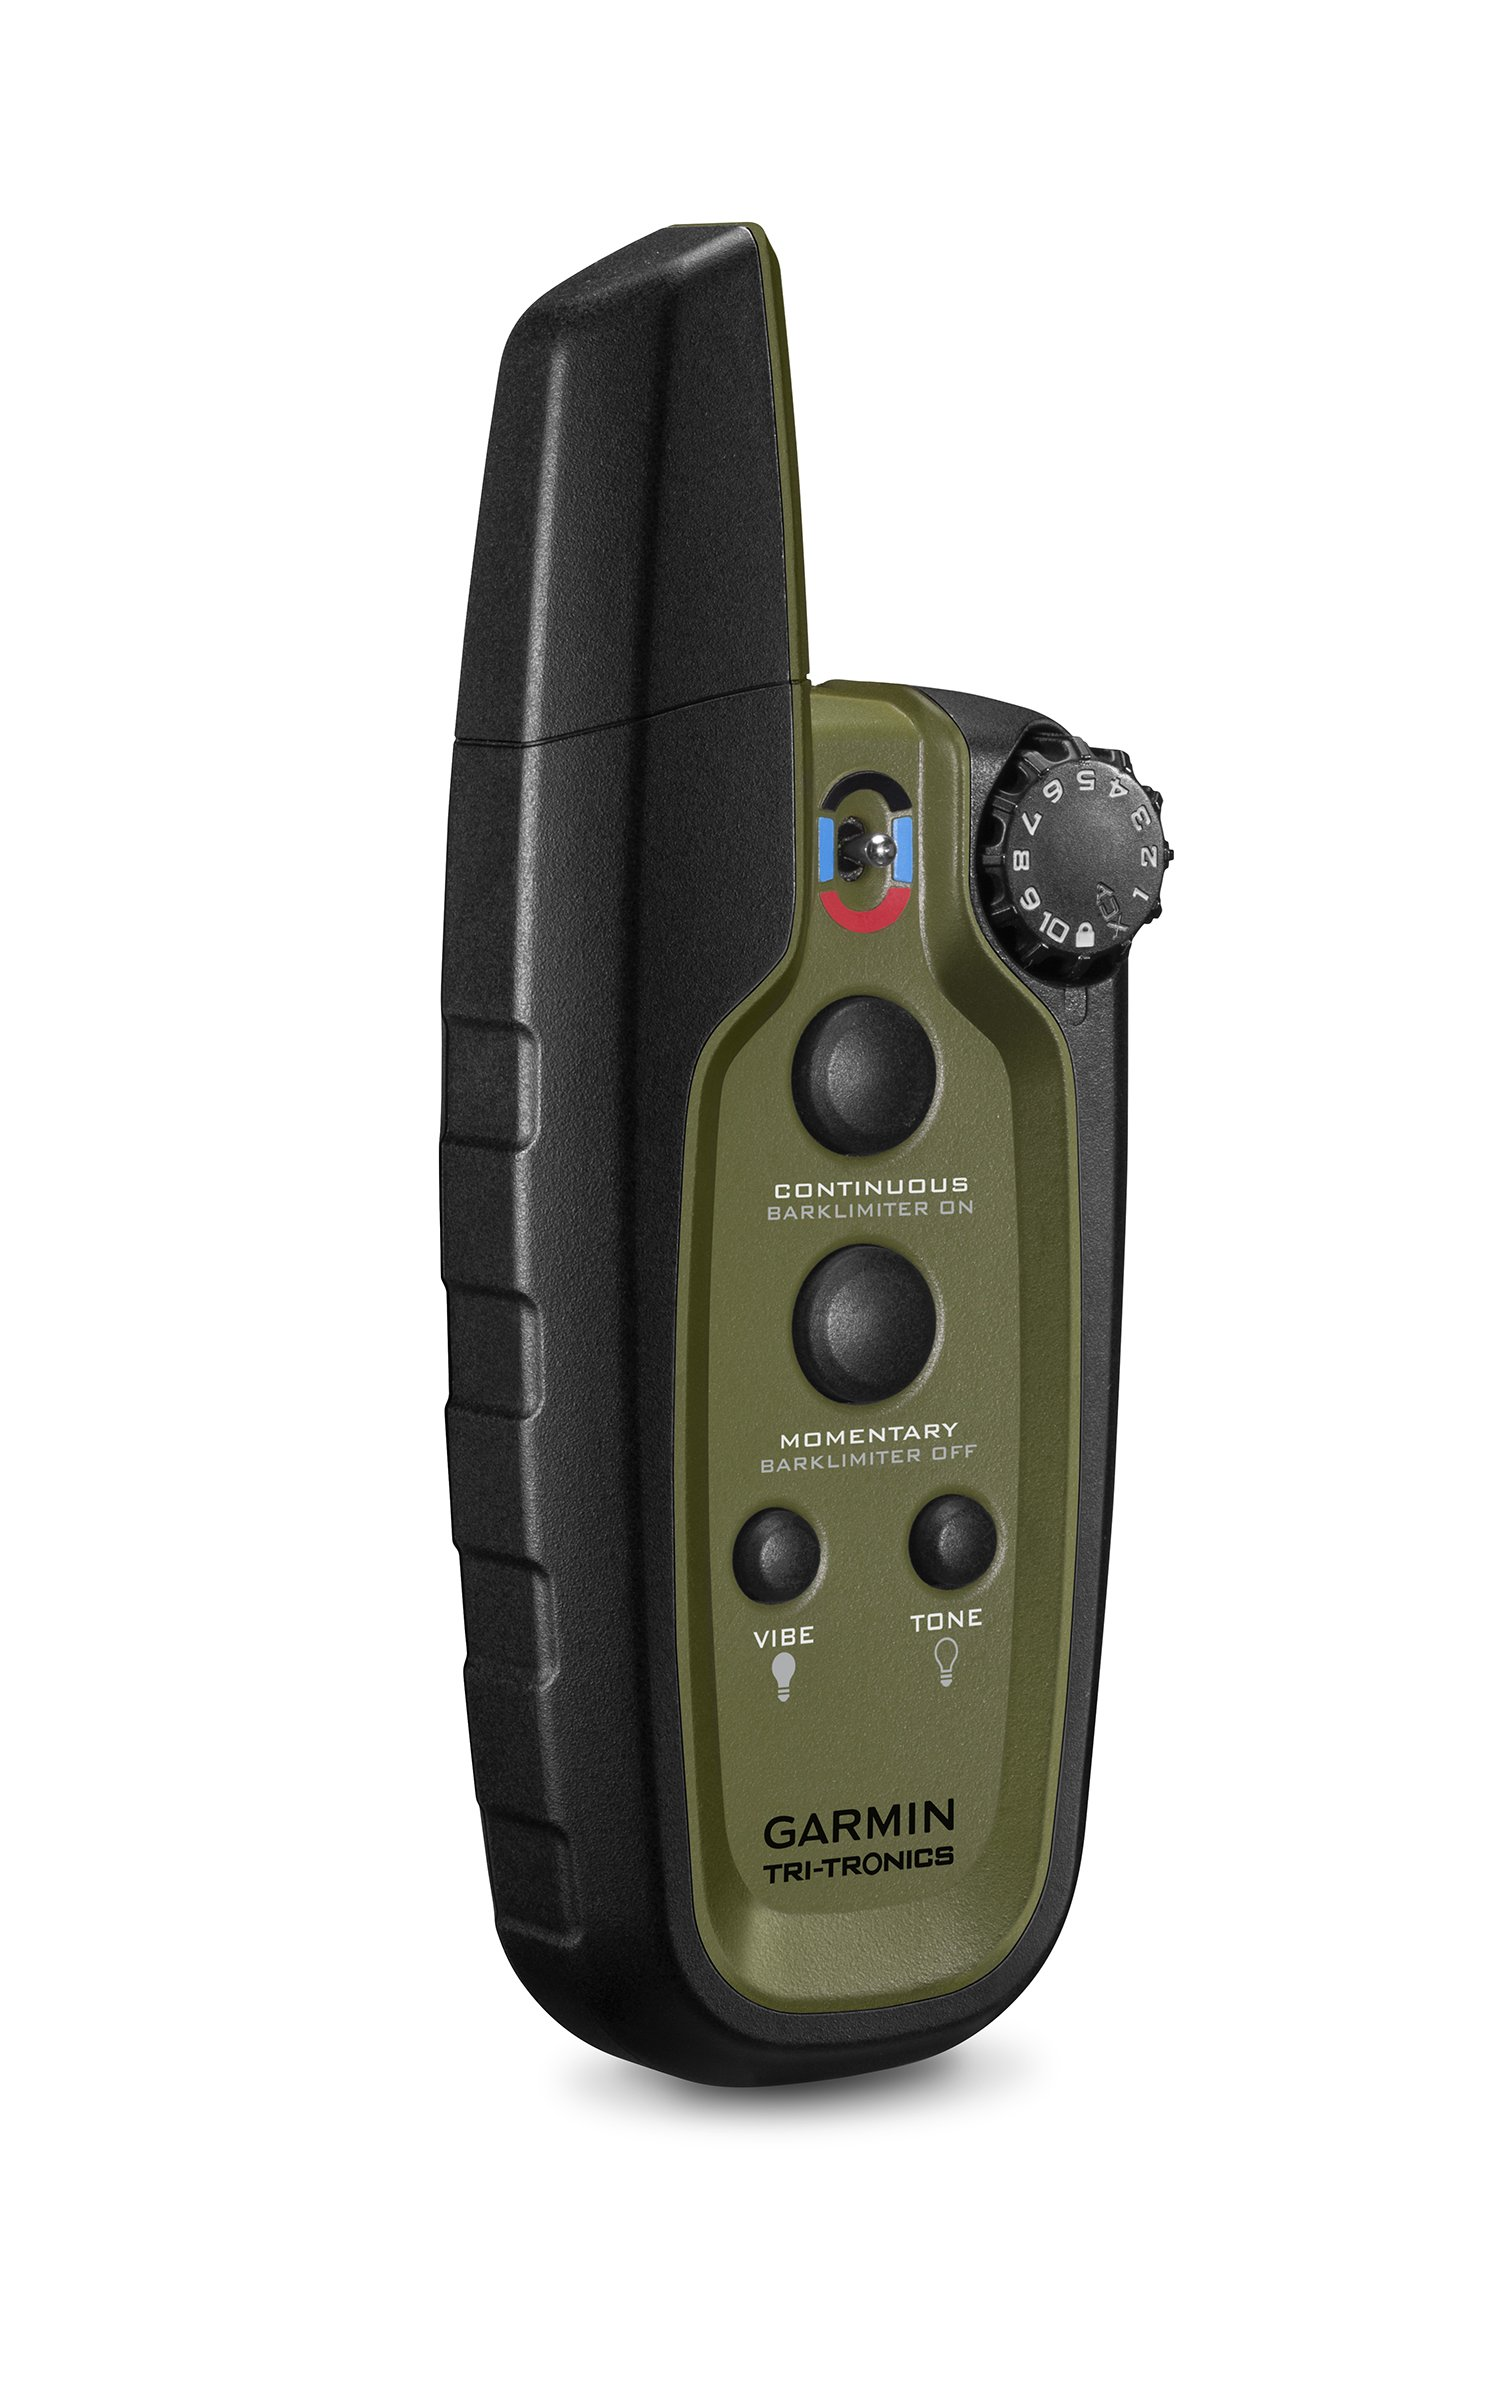 Garmin Sport PRO Bundle, Dog Training Collar and Handheld, 1handed Training of Up to 3 Dogs, Tone and Vibration by Garmin (Image #2)